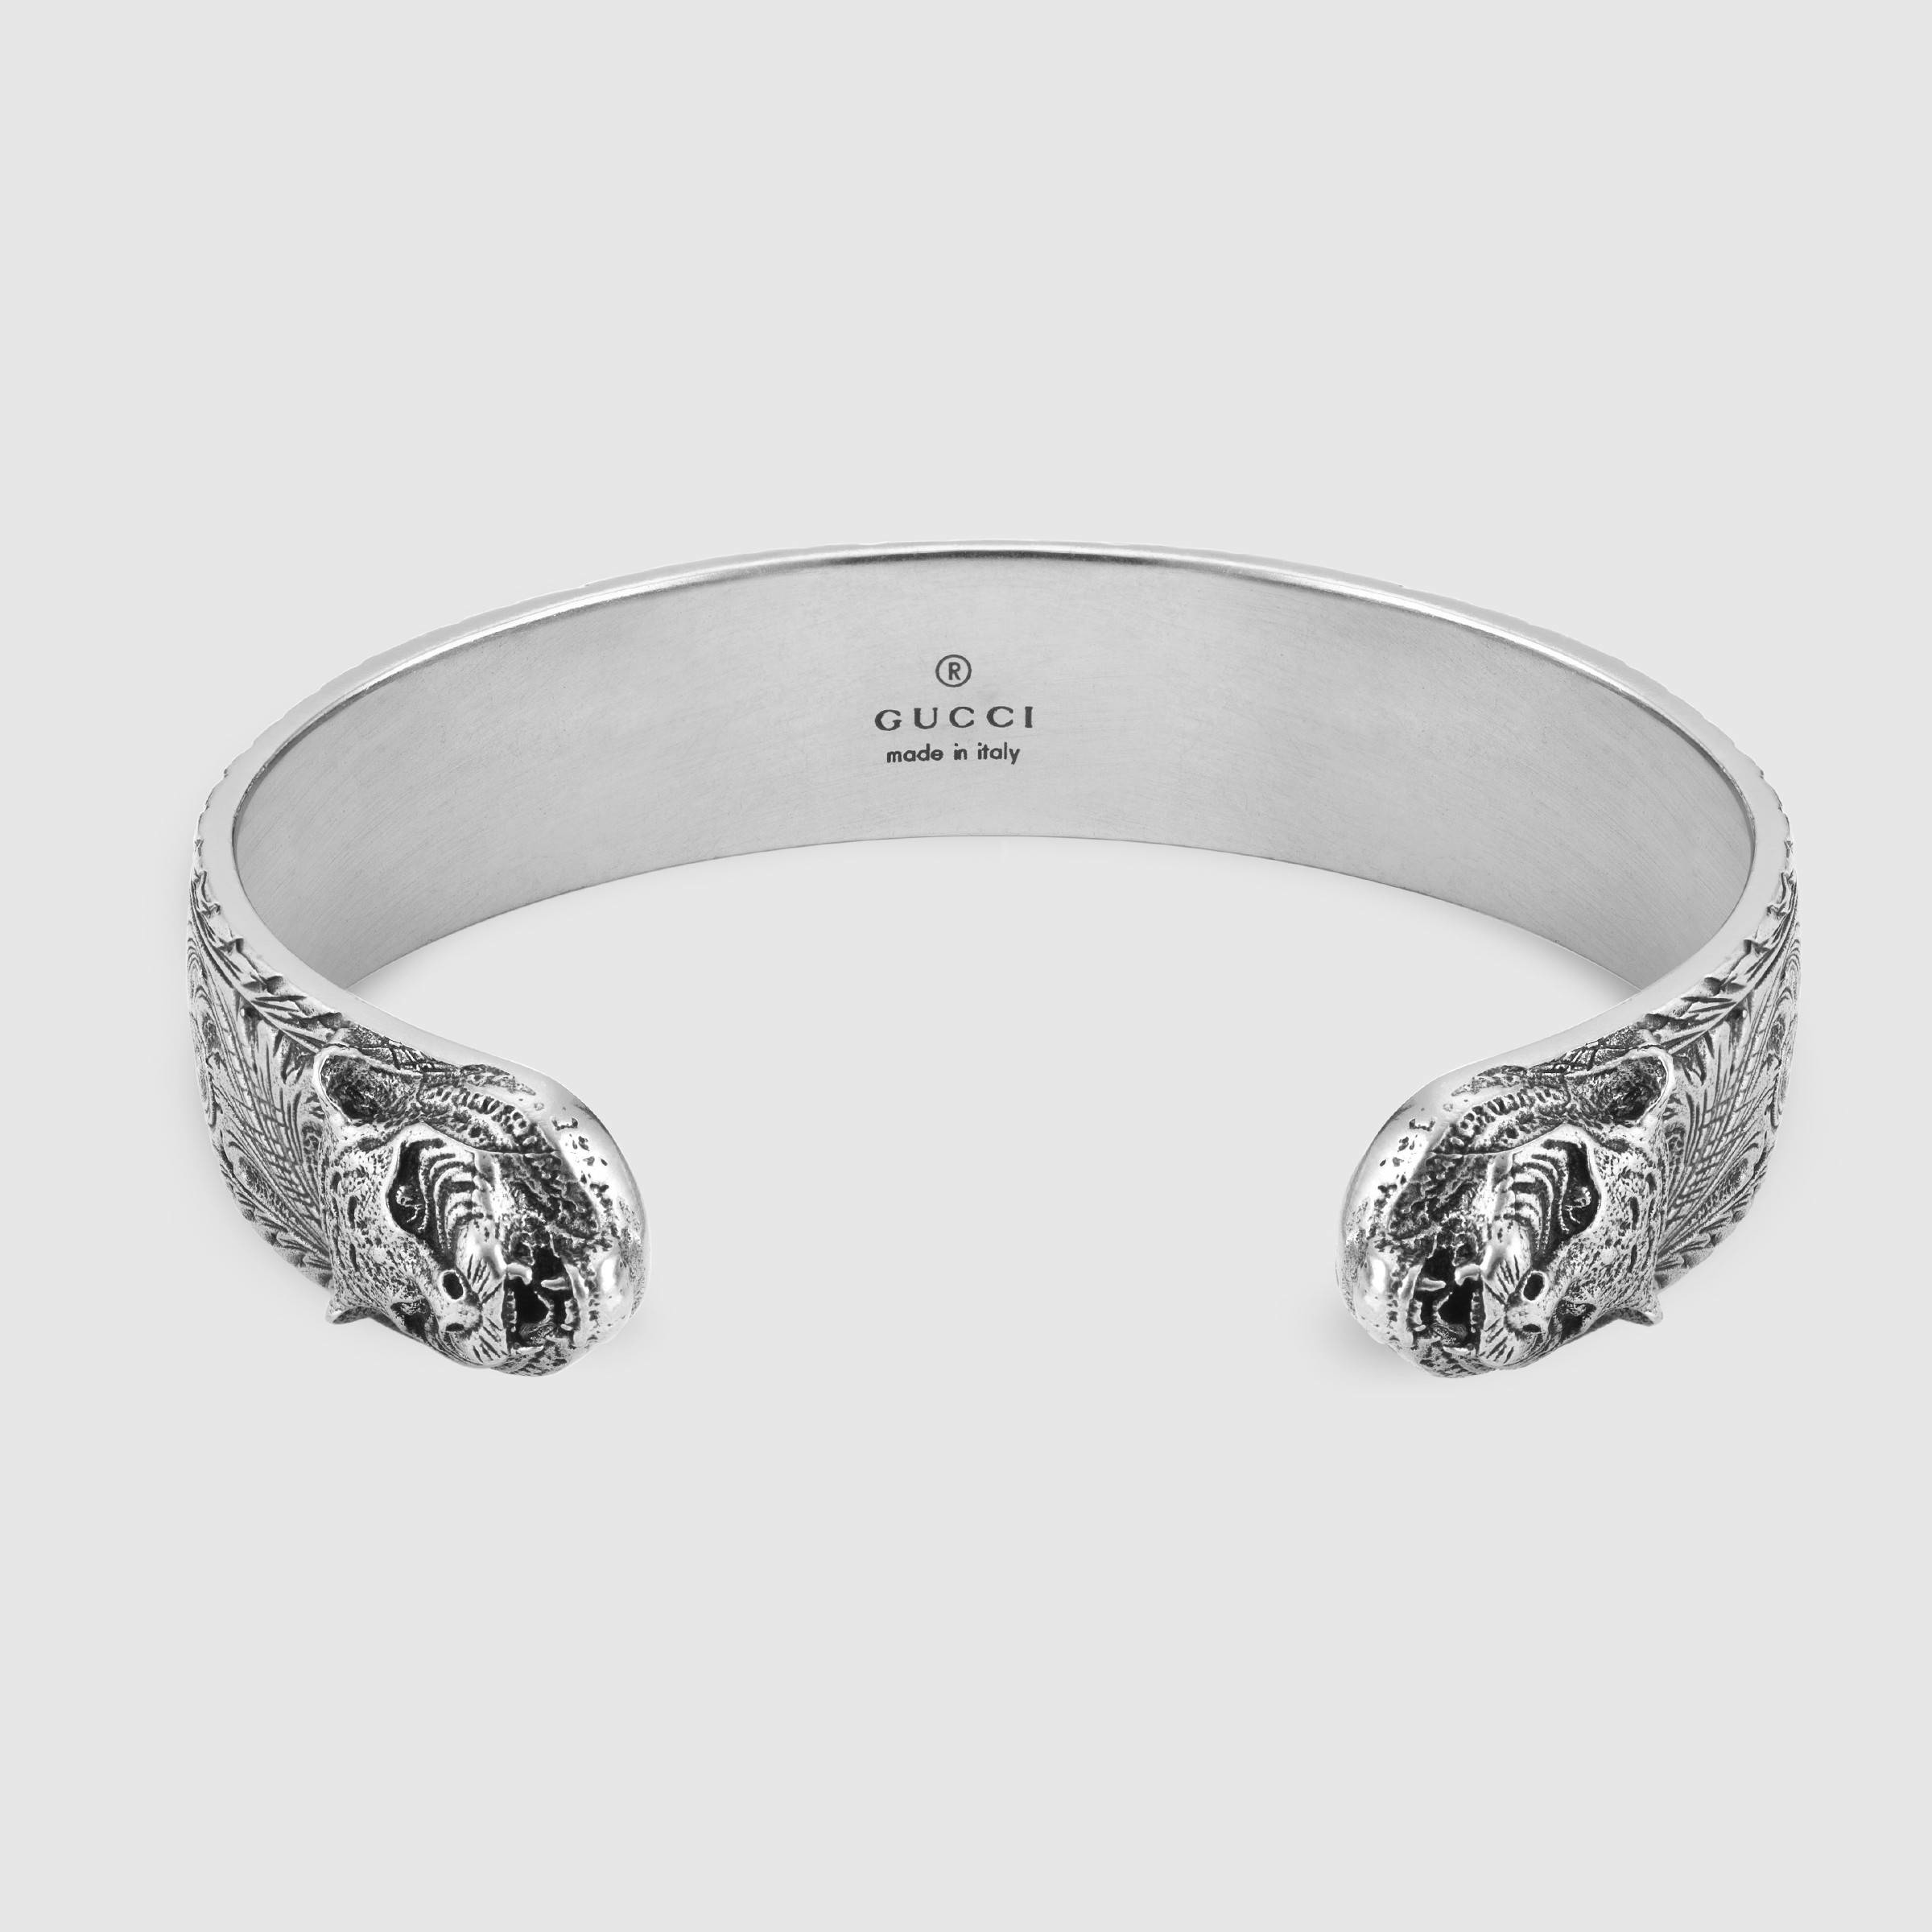 69d8640aa80 Gucci Bracelet In Silver With Feline Head in Metallic for Men - Lyst